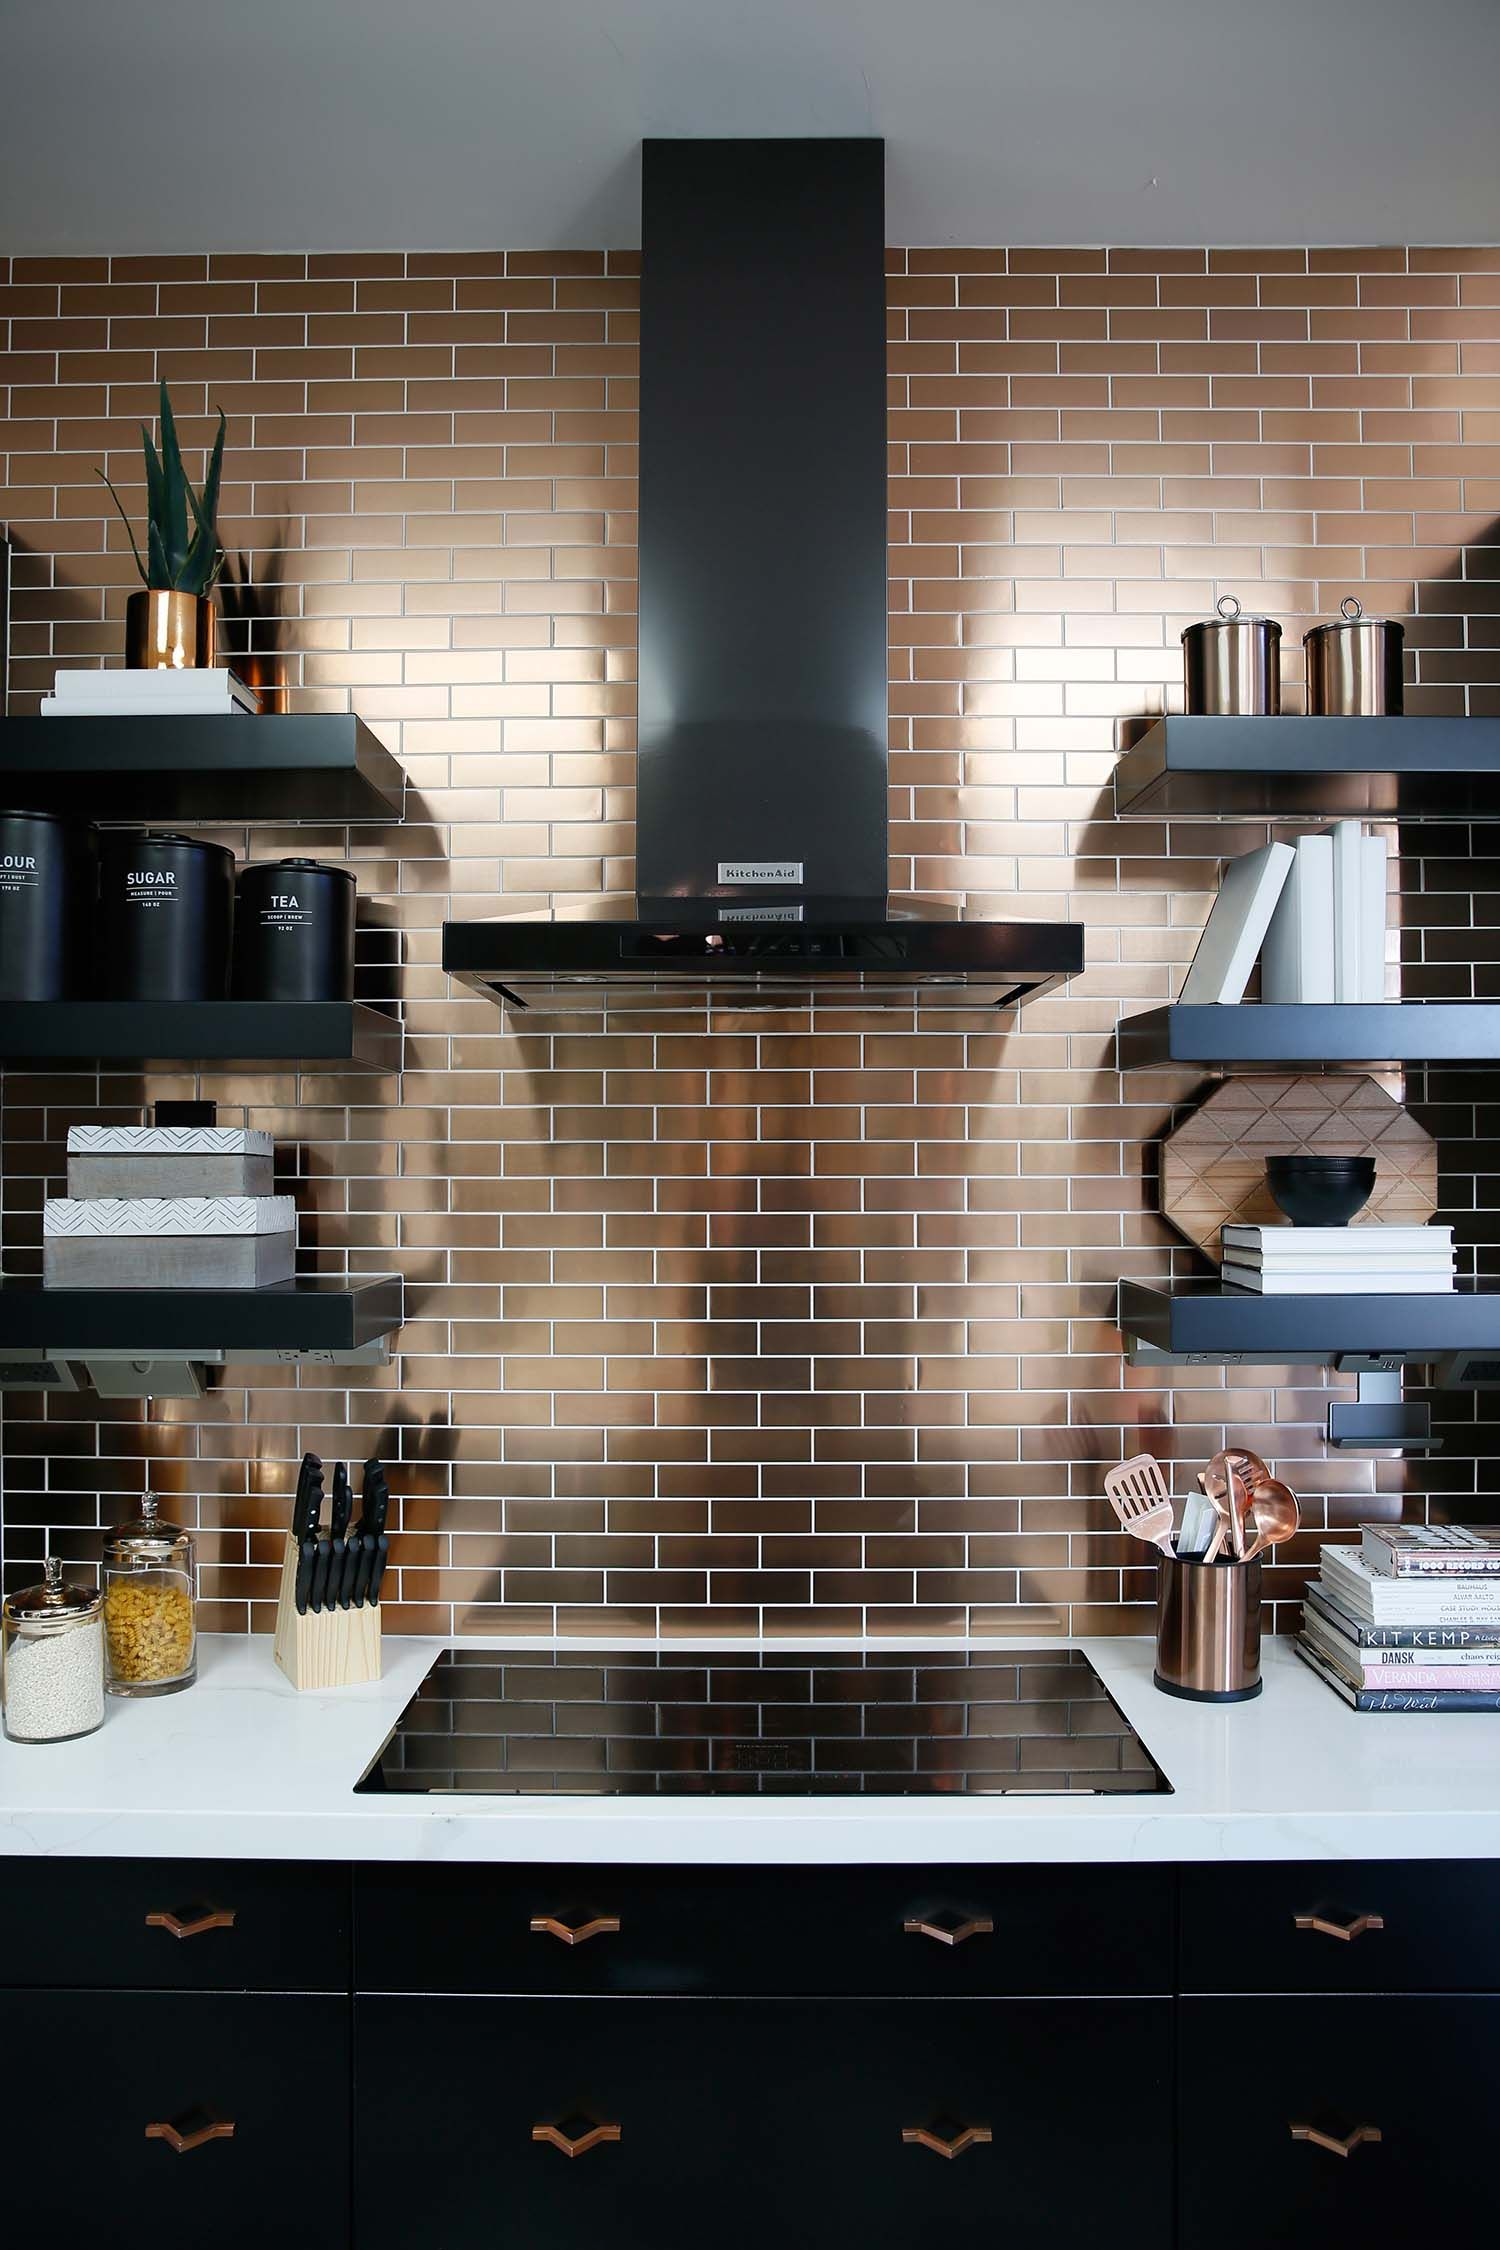 6 Outstanding Kitchen Backsplash Ideas That Make You Feel Like a Professional Chef is part of White Home Accessories Country Kitchens - Cooking has always been a tasteful activity, but it depends on the ambiance given by your kitchen  If you are surrounded by goodlooking, wonderful kitchen backsplash, then cooking will always be amazing for you  That is why it is necessary for you, who make cooking as a hobby, to update yourself on the wonderful kitchen backsplash ideas  We all know that countertops and cabinets are taking the prominent space in the kitchen, but a thematic and lovable kitchen backsplash ideas bring much more difference to the kitchen and your mood while cooking as well  Hence, are you ready to feel like a professional chef, at least in your kitchen  Give yourself a touch of happiness with these marvelous kitchen backsplash ideas Kitchen Backsplash Ideas www eandstile com That black and honey barn wood will never get old to give a simple and minimalist look for your kitchen  Since it comes with the dark colors, so it won't easily look dull and dusty  If you are too busy with your activities and don't have too much time to clean your kitchen, you have to choose this style  Combined with white wood cabinets and white marble countertops, the ambiance of this kitchen is so